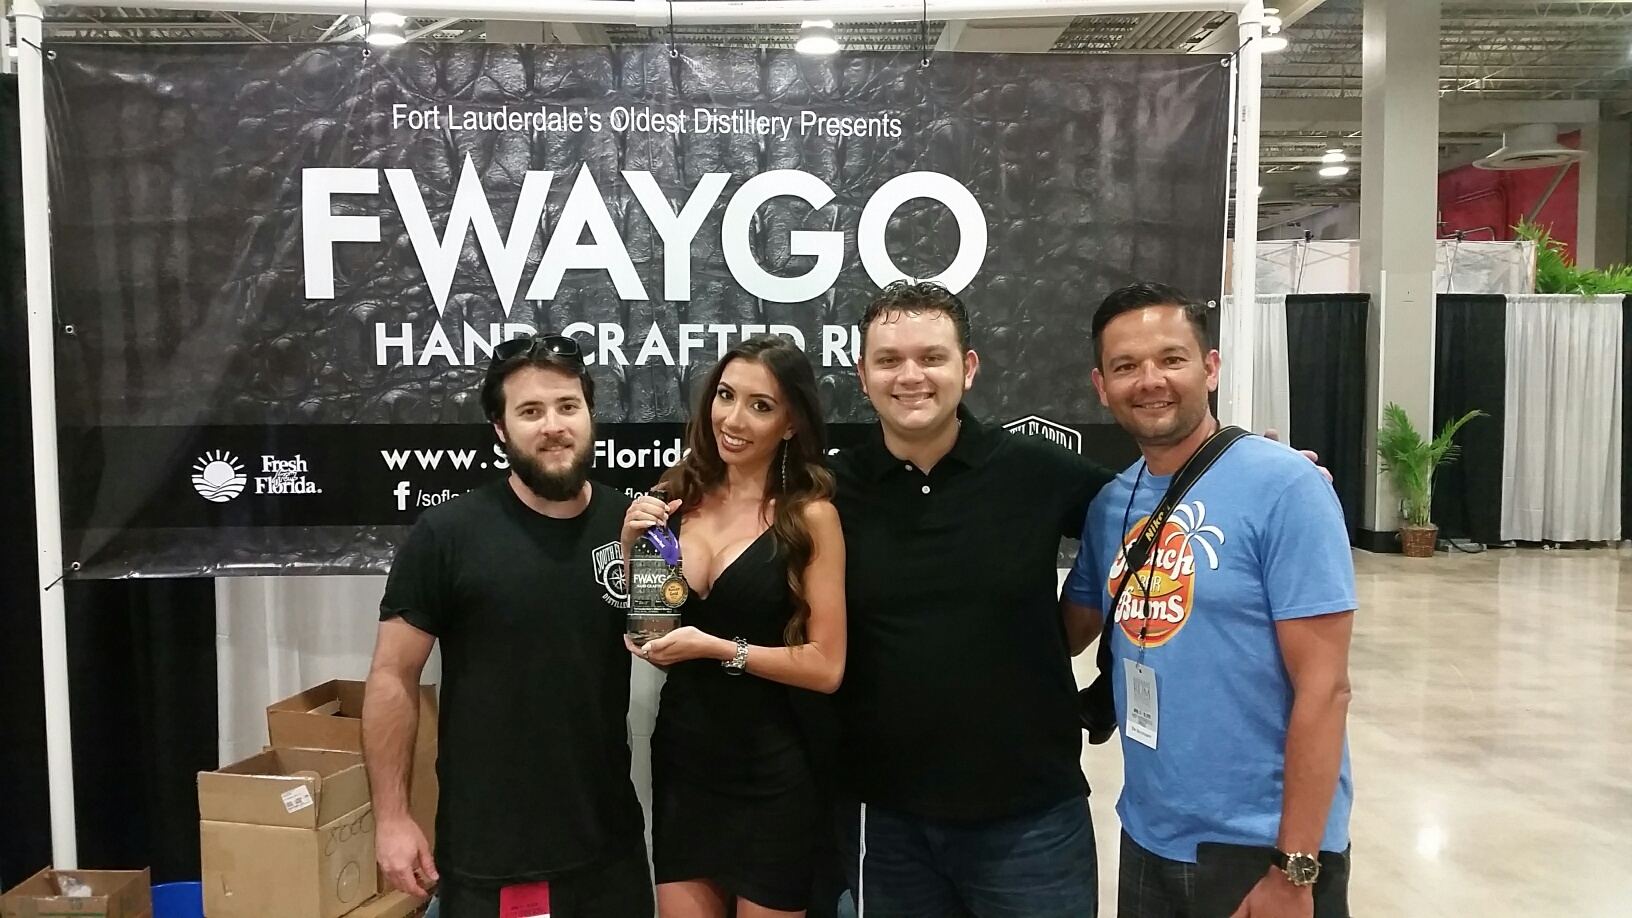 Fwaygo Rum, manufactured just down the road from Miami in Ft. Lauderdale.